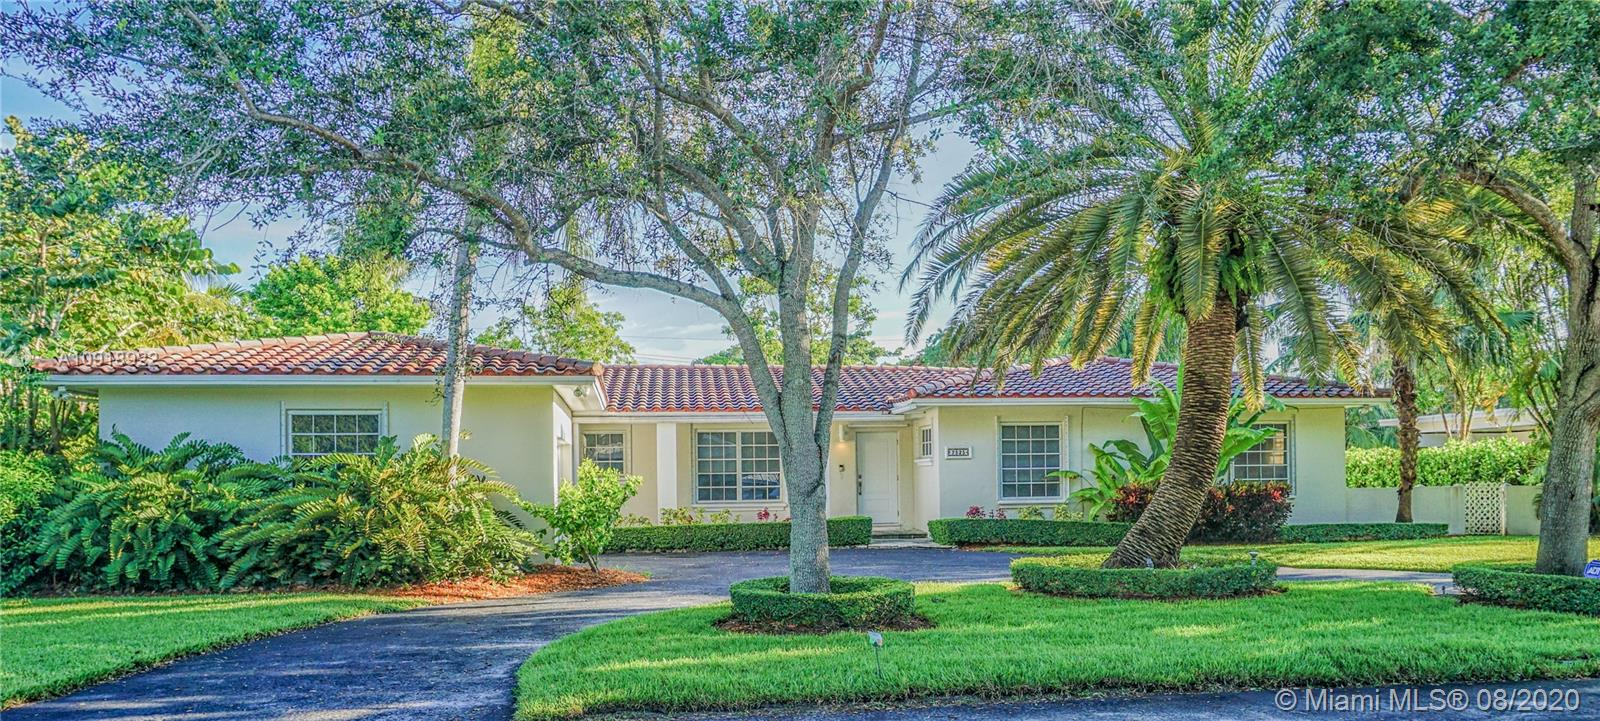 Ideal home for a growing family in a fantastic location. Renovated only 5 years ago and has a very efficient layout. Includes a Florida Room with a high ceiling and glass doors that open to the pool area. The outdoor area includes a recently remodeled pool with a modern gazebo and extensive landscaped garden. Two exterior rooms (in concrete block construction) are perfect for extra storage. Superb location in South Miami on quiet cul-de sac with direct access to the Palmetto highway and US-1, very close to public and private schools (St Thomas Apostle, Montessori, South Miami Lutheran), the University of Miami , restaurants, services and shopping (Dadeland Mall is only 10 minutes away).